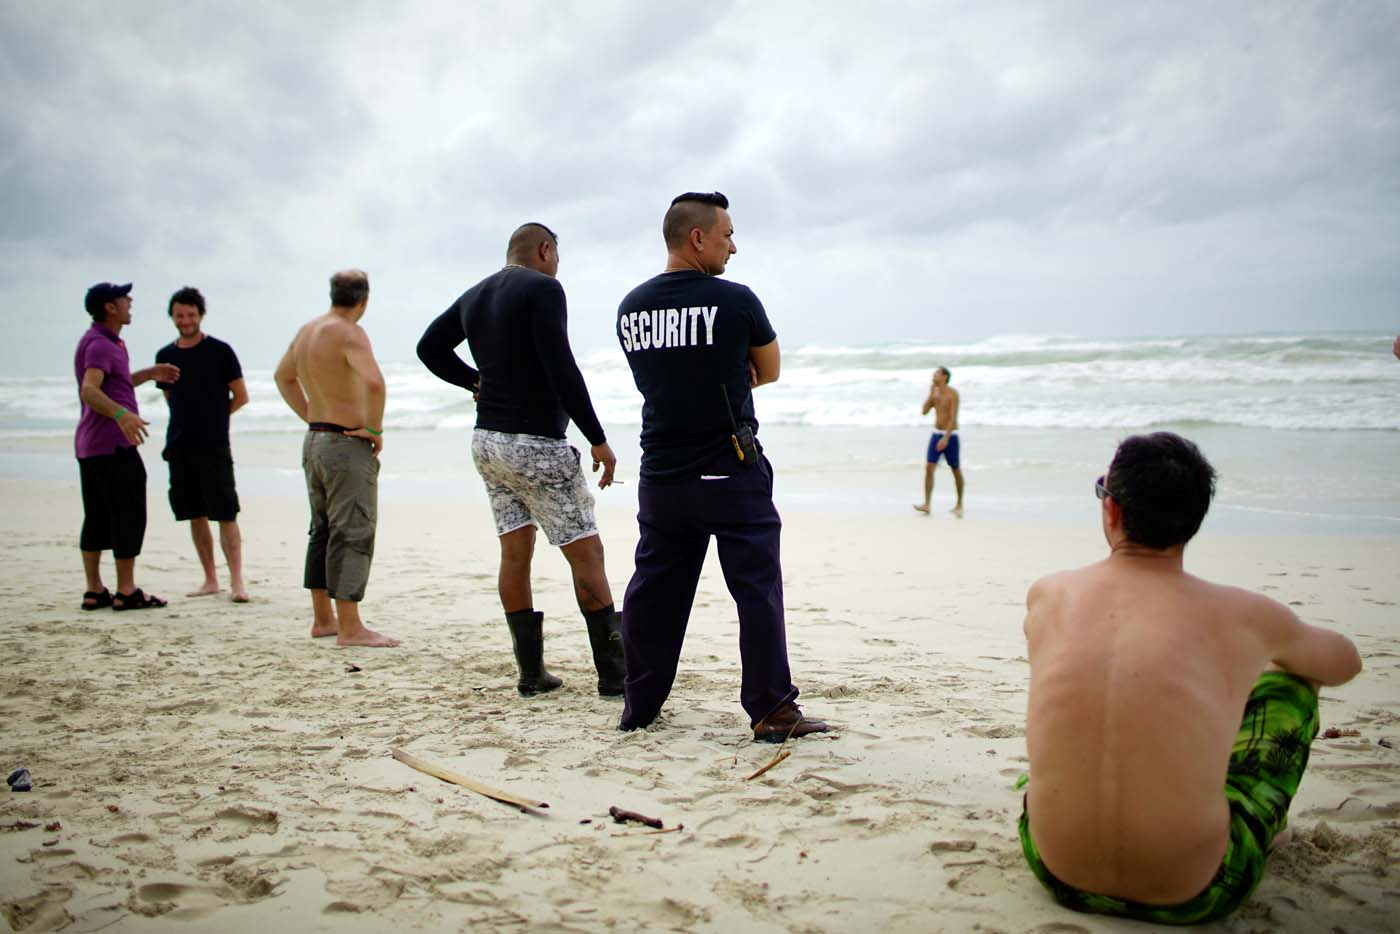 Tourists and a security agent are seen on a beach a day after the passage of Hurricane Irma in Varadero, Cuba, September 10, 2017. REUTERS/Alexandre Meneghini